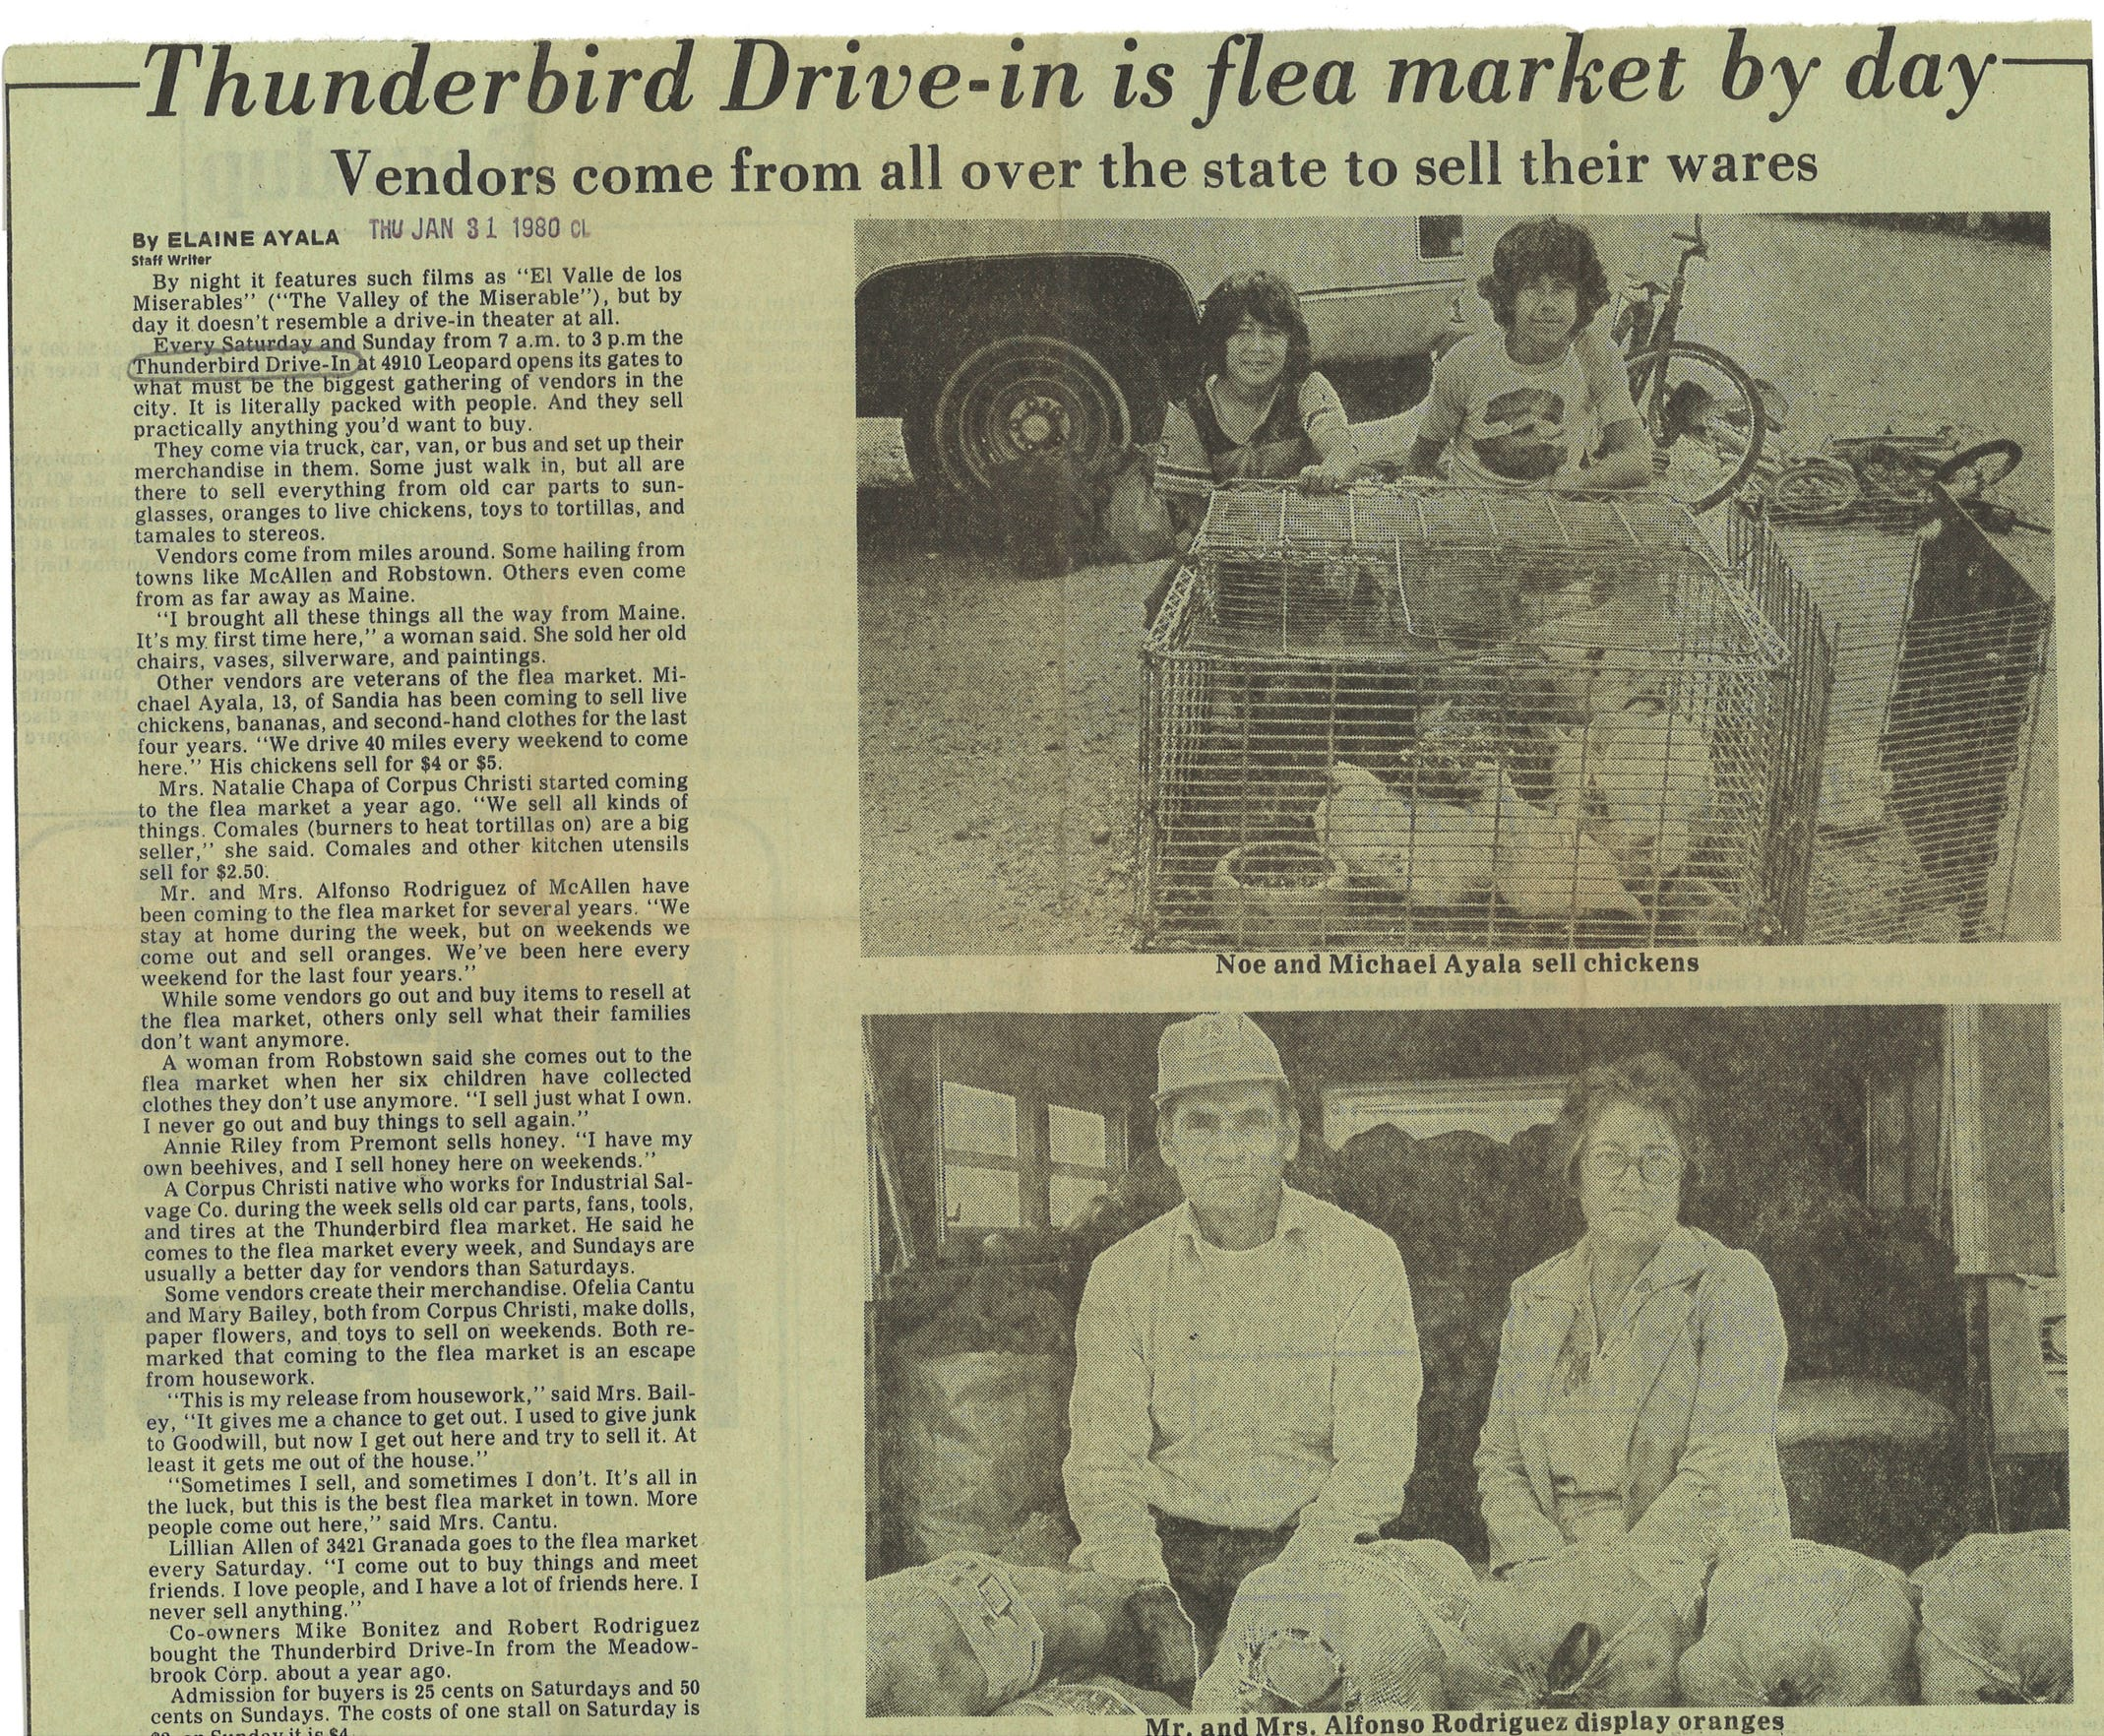 Article from the Community Life section of the Caller-Times on Jan. 31, 1980 describing the Thunderbird Flea Market.